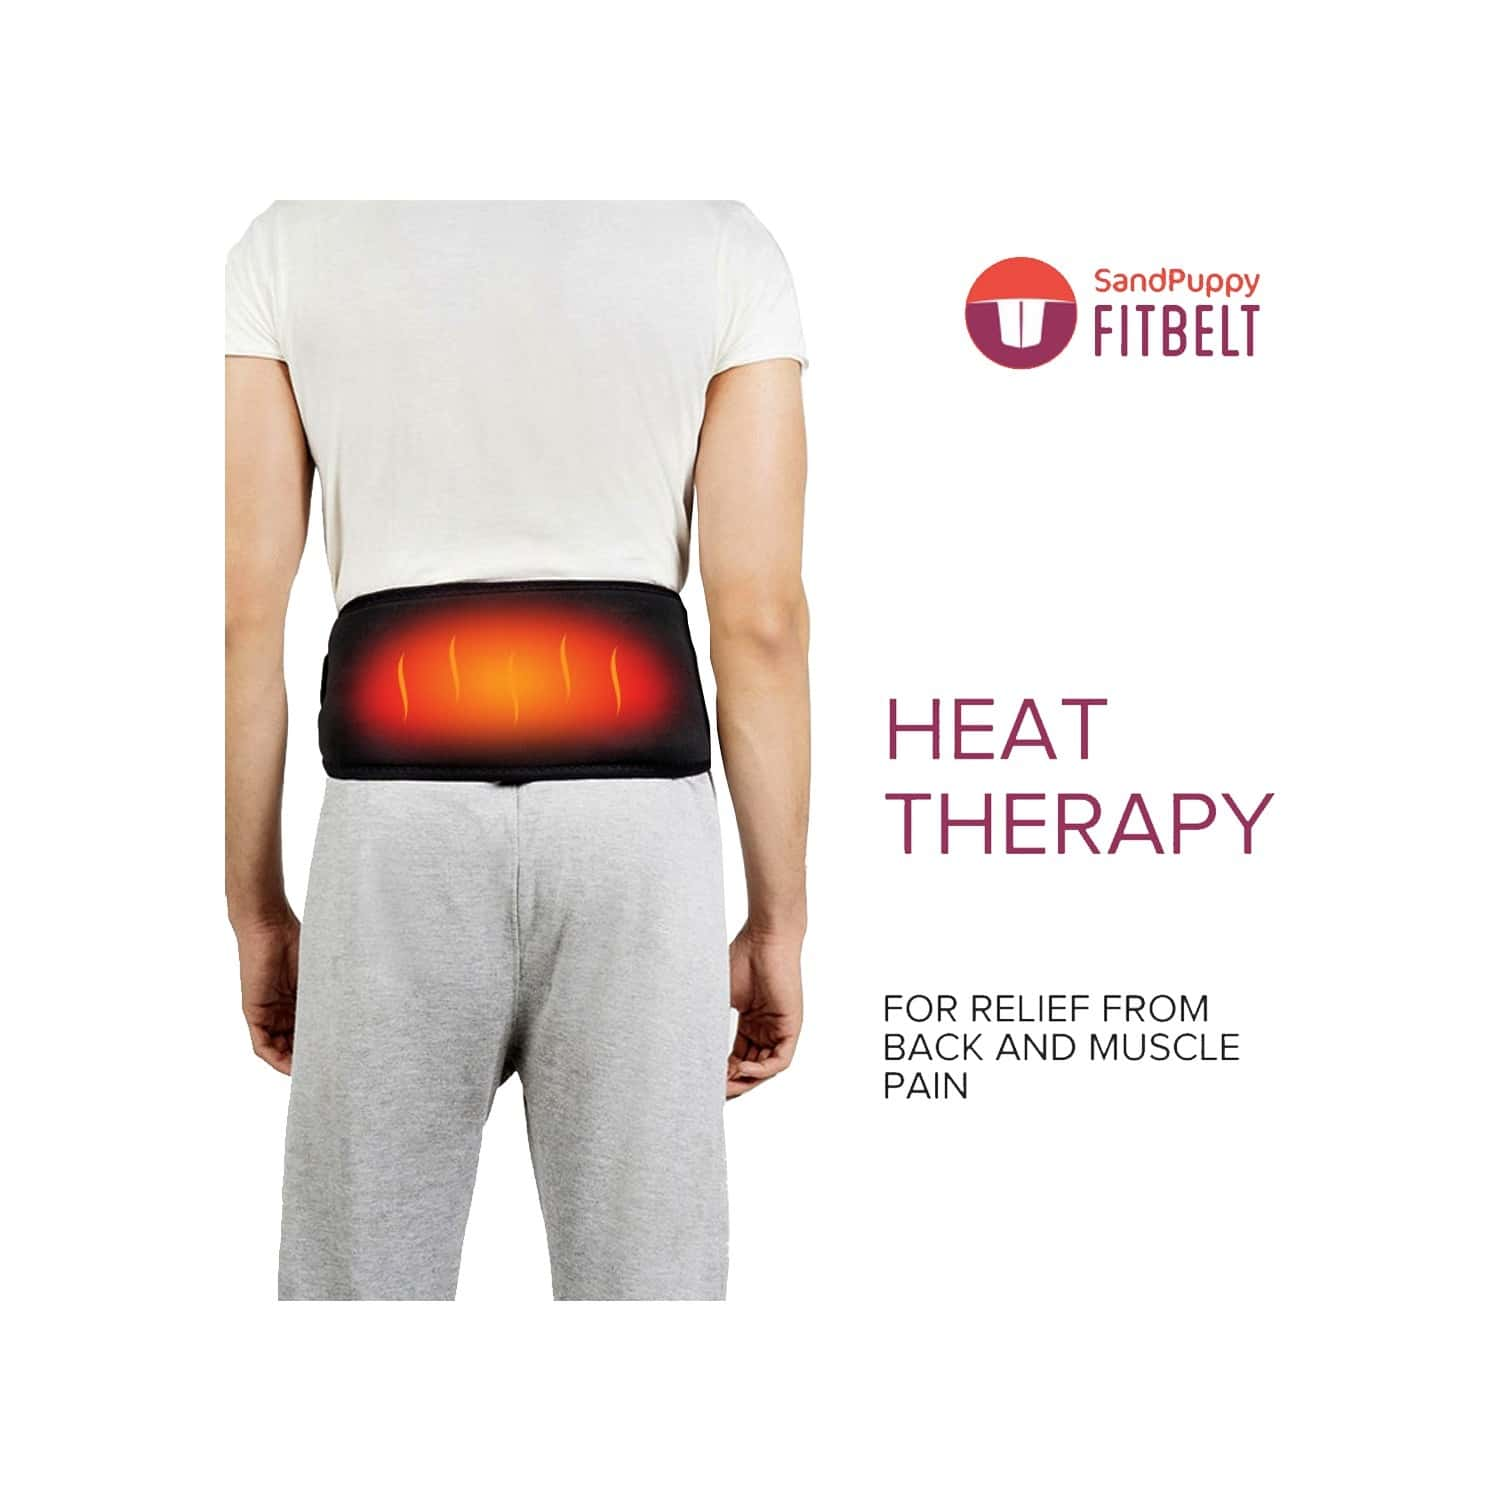 Sandpuppy Fitbelt - Portable And Wireless Heating Pad For Back Pain Relief